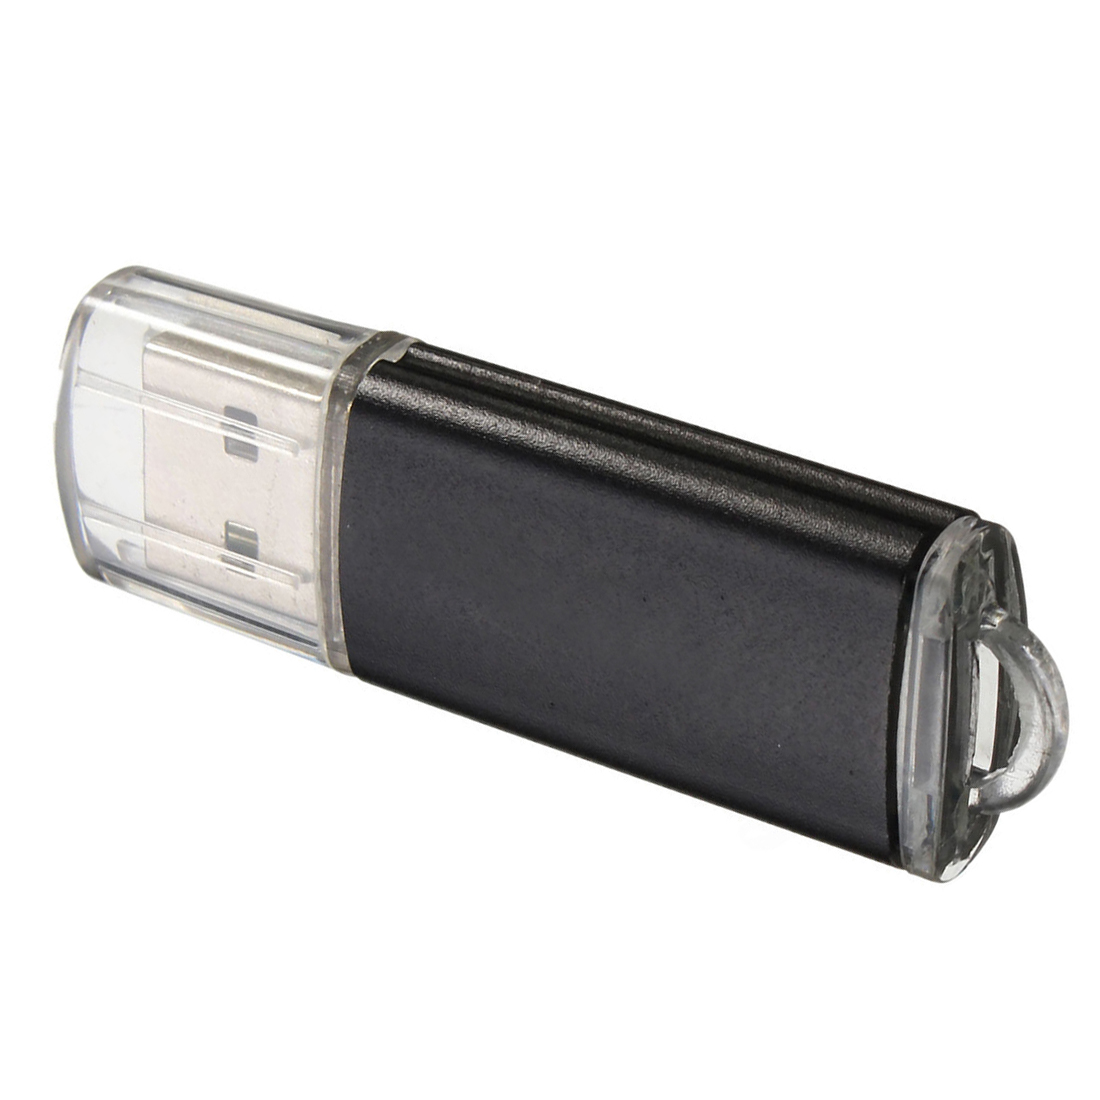 10pcs 64MB USB 2.0 Flash Memory Stick Drive Thumb Black